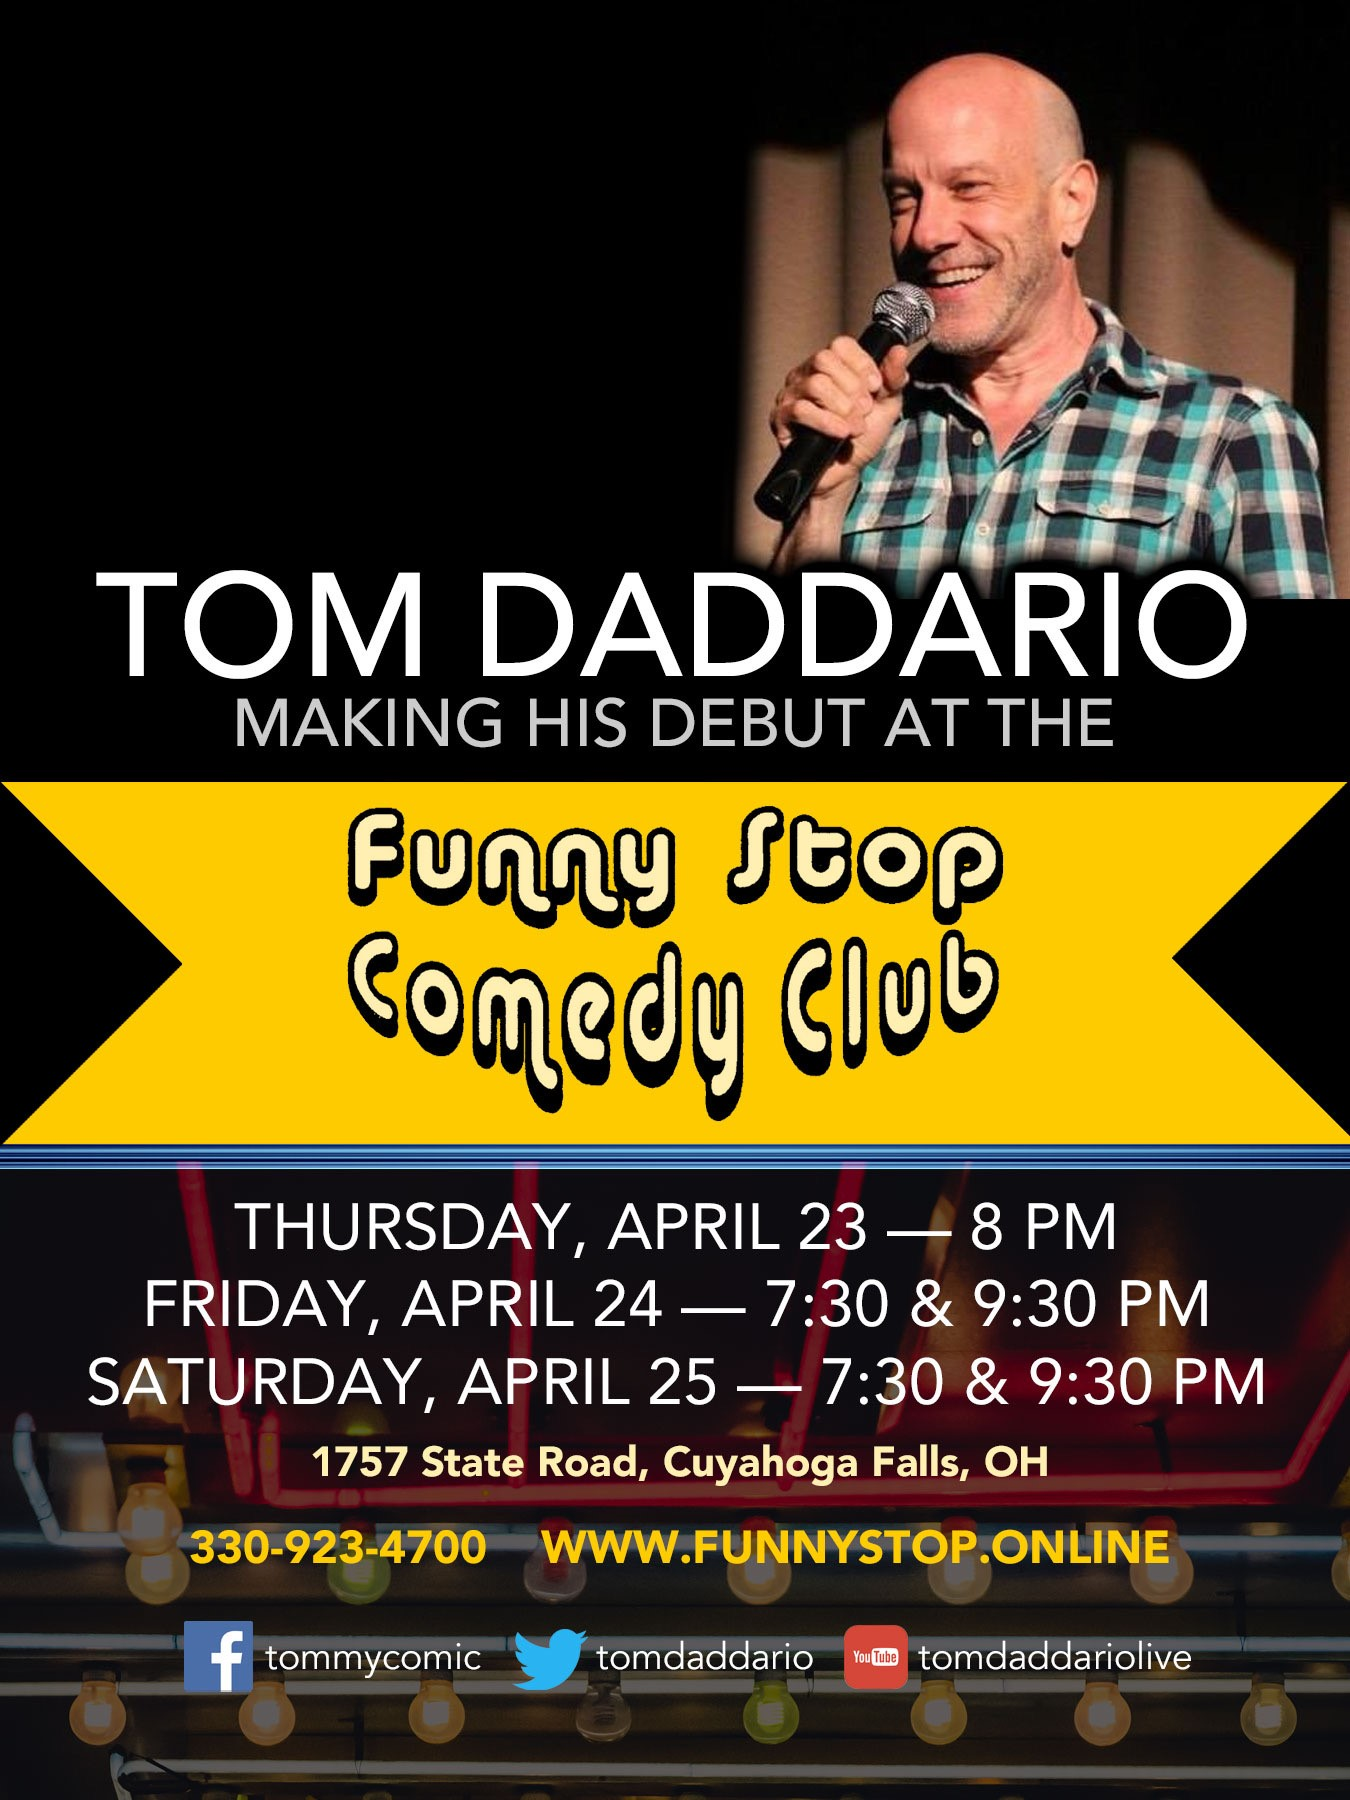 Tom Daddario 7:30 Show  on abr. 24, 19:30@Funny Stop Comedy Club - Buy tickets and Get information on Funny Stop funnystop.online